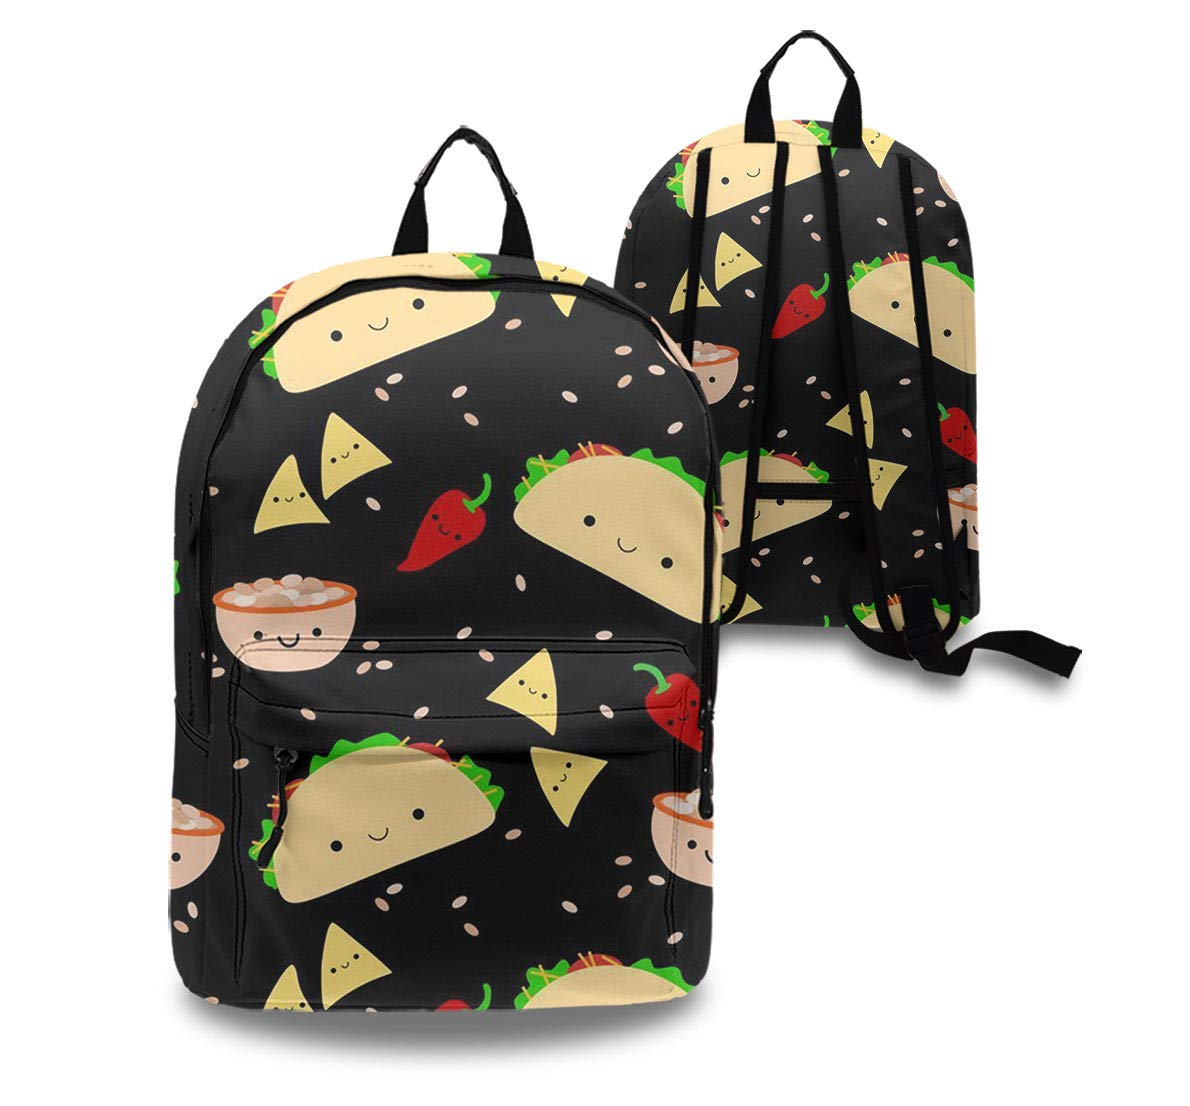 dd48e3c0b292 Amazon.com: Taco Tuesday Party Rucksack With Side Pockets, Traveling ...